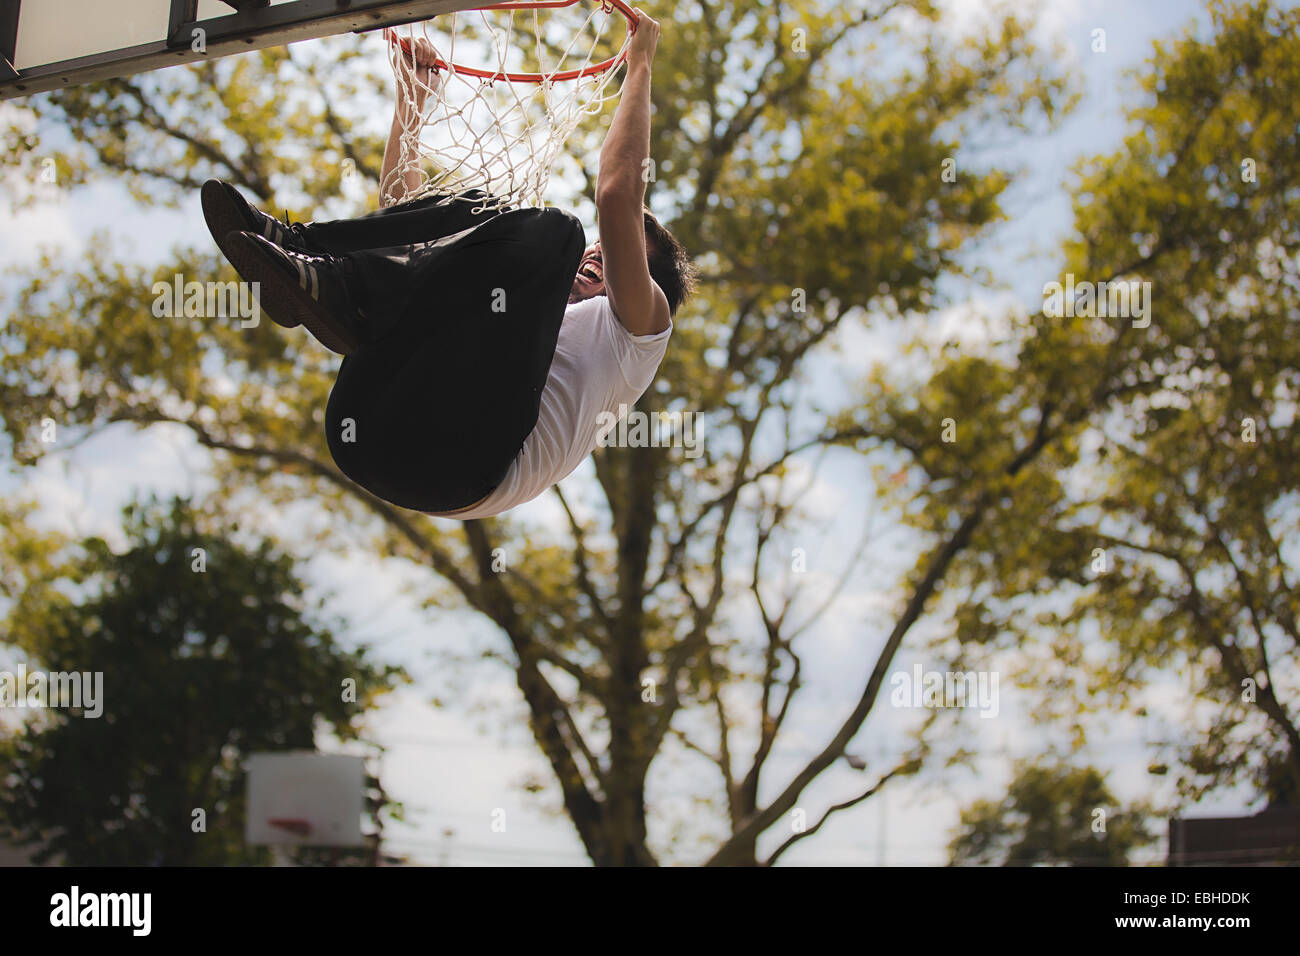 Low angle view of young male basketball hanging from basketball hoop - Stock Image